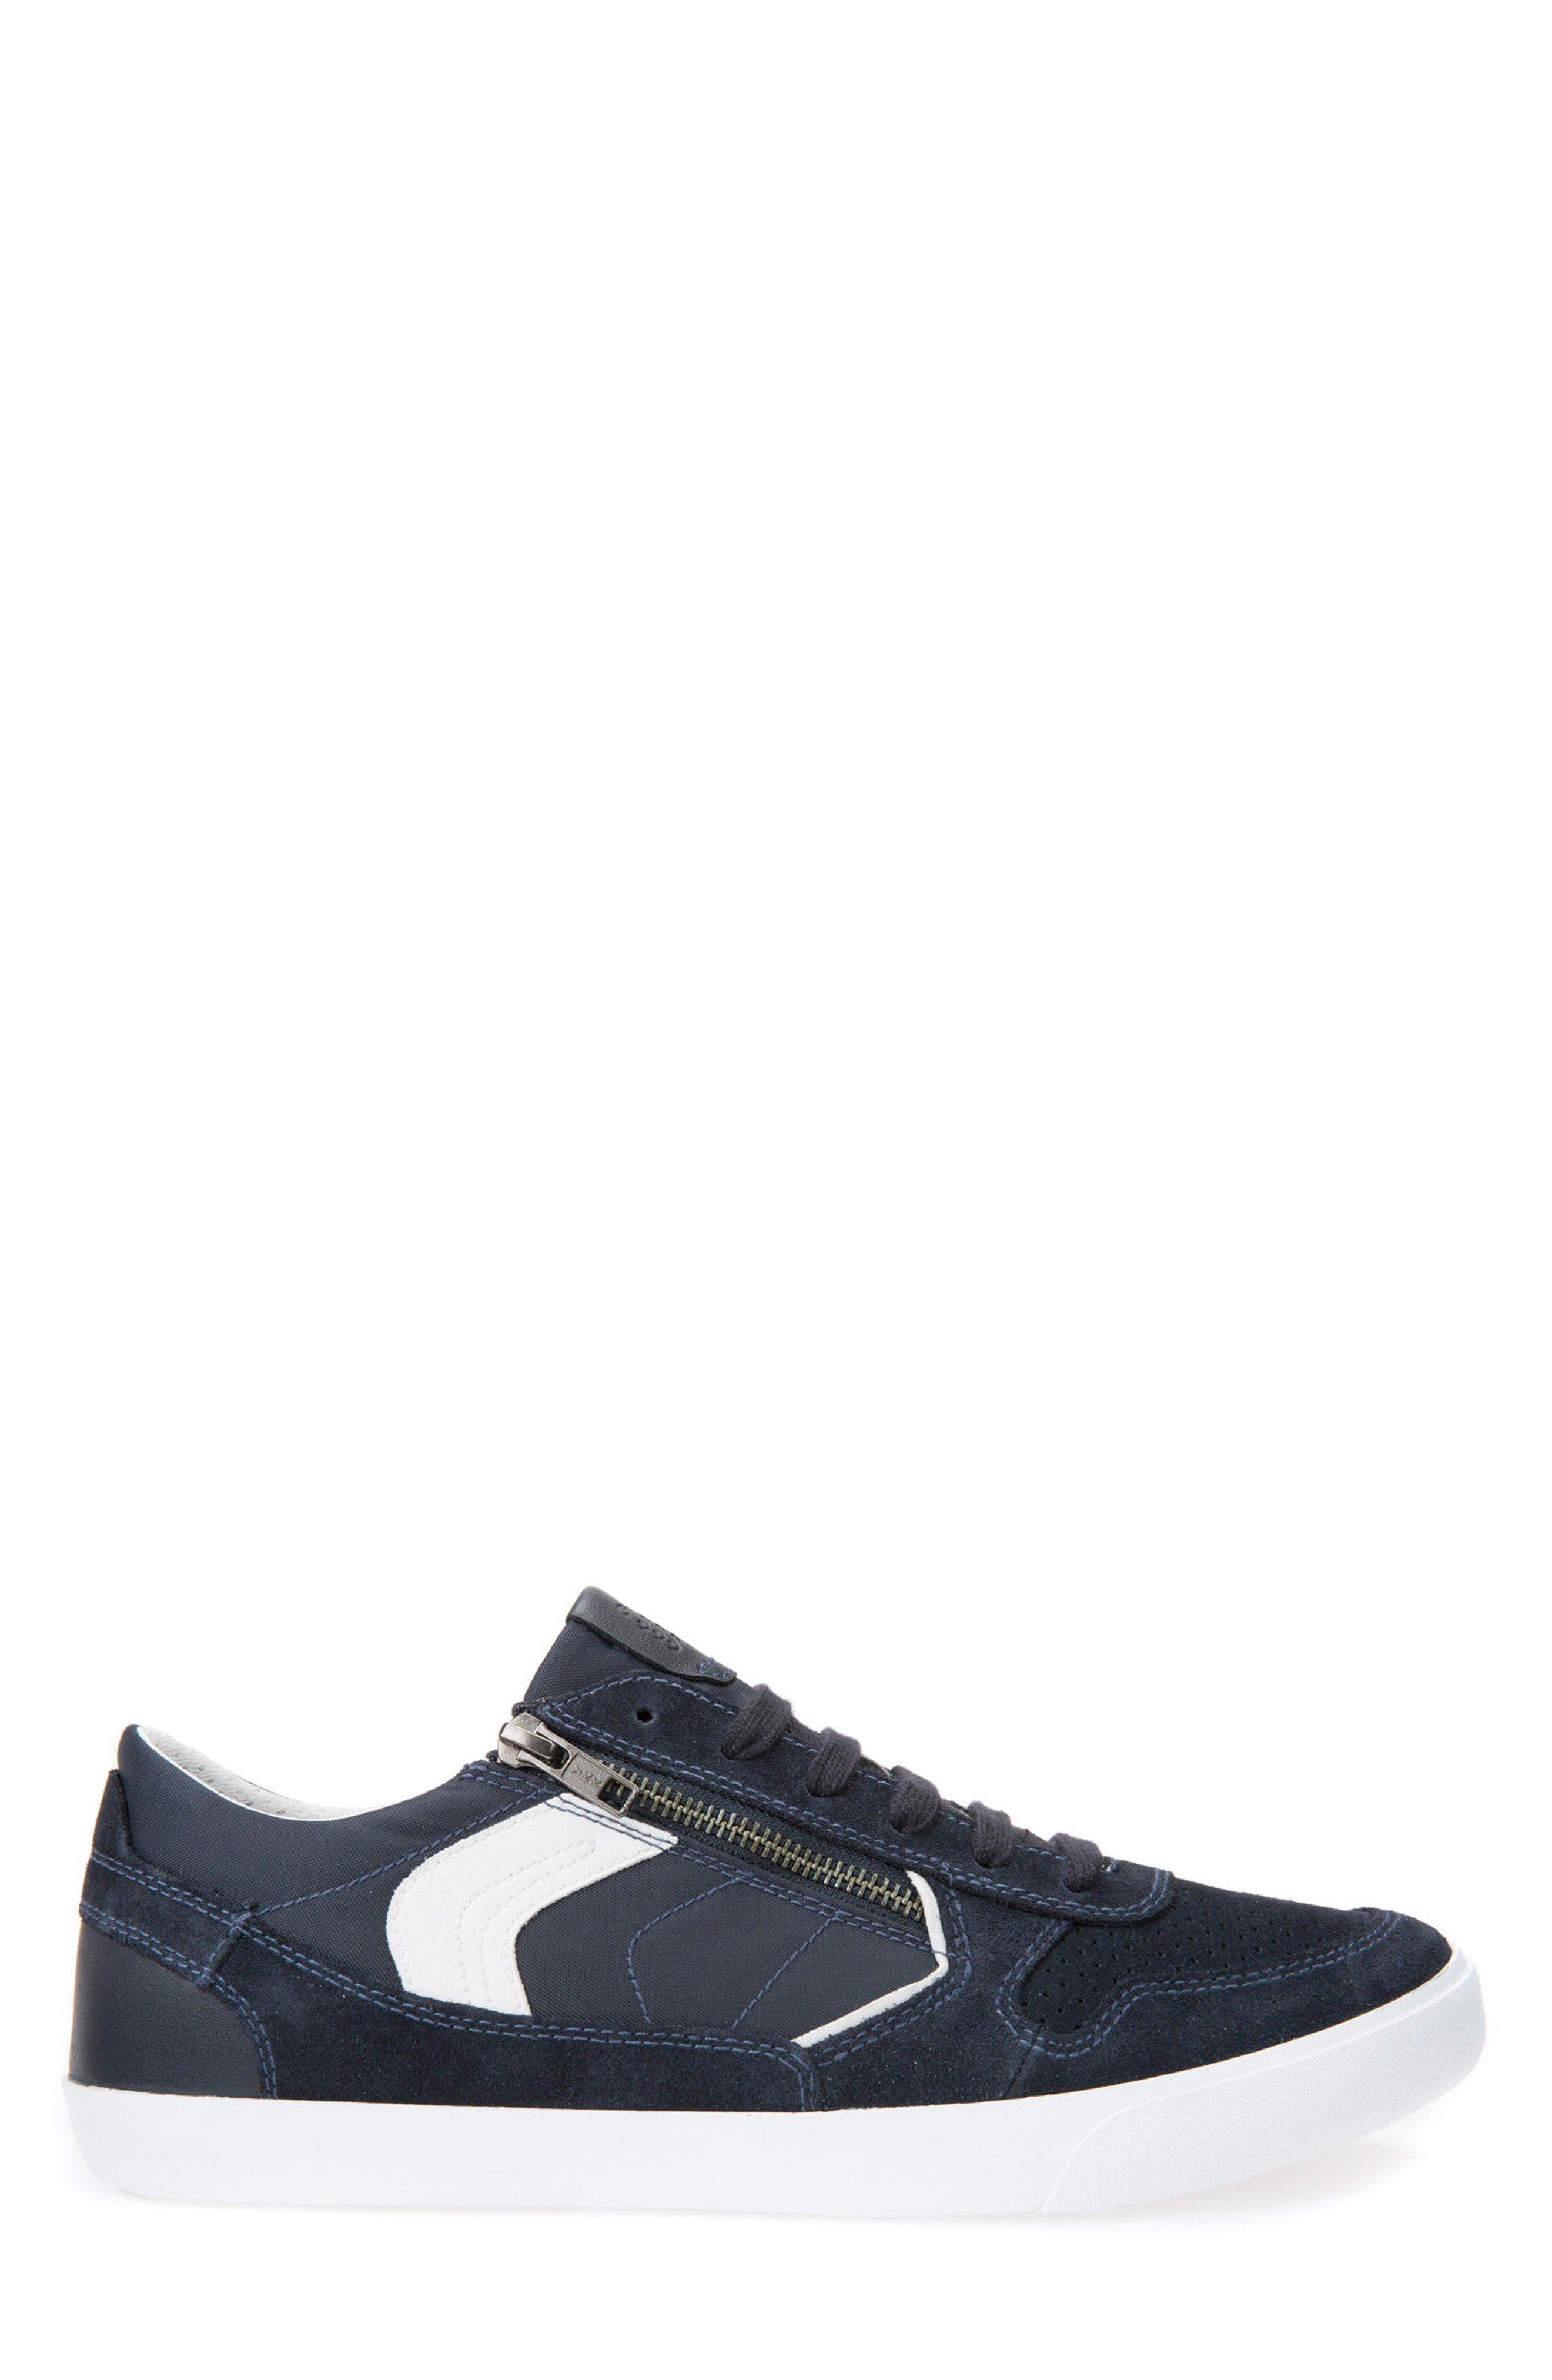 Box 33 Low Top Zip Sneaker,                             Alternate thumbnail 3, color,                             Navy